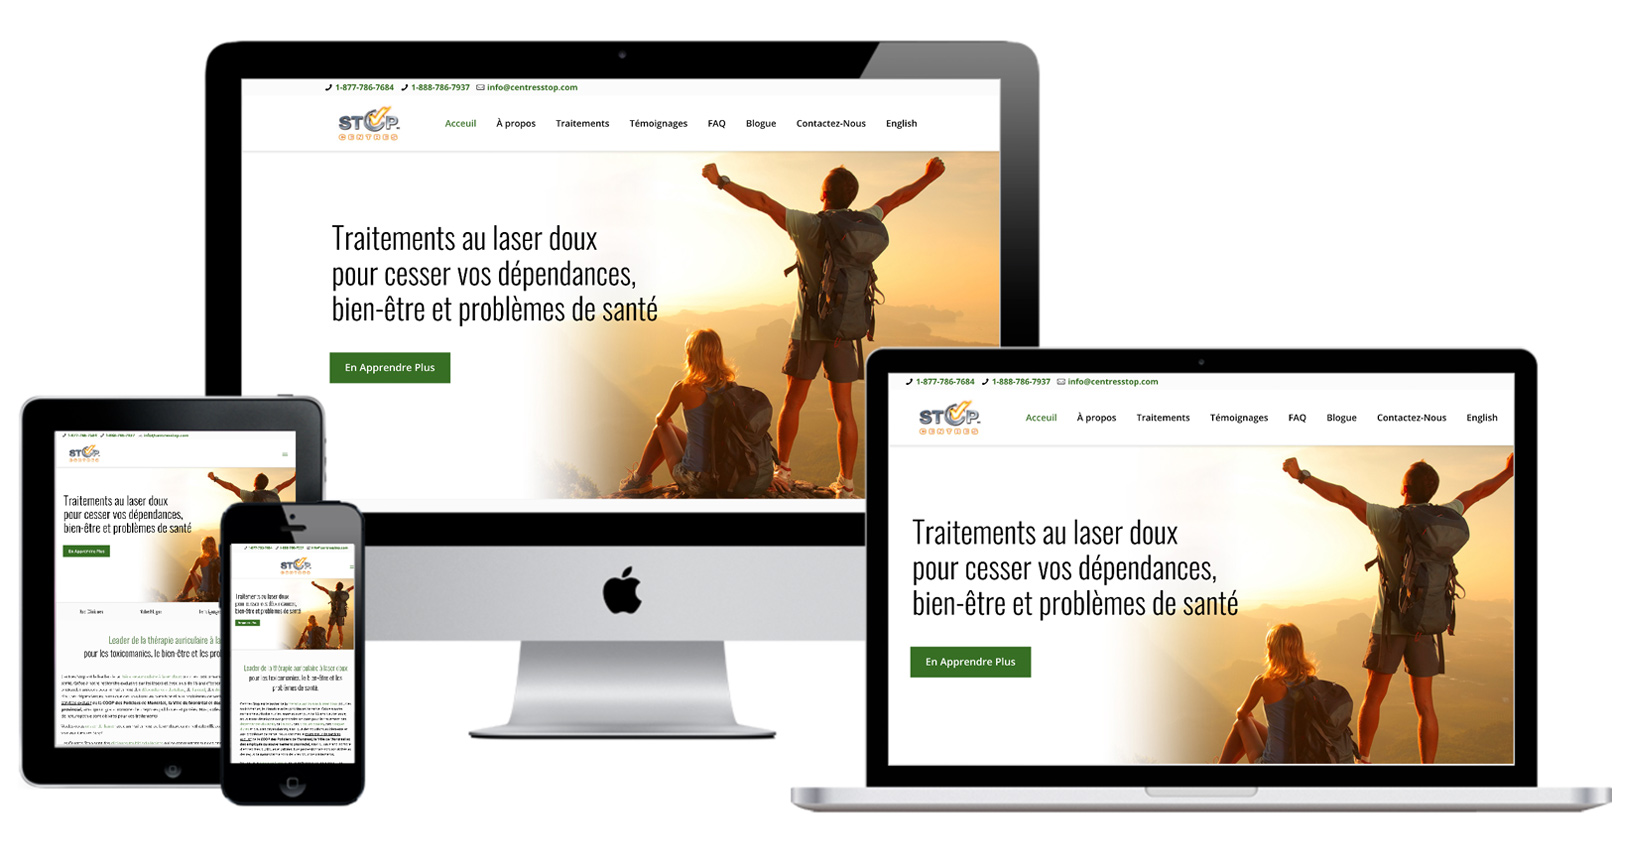 Drug Addiction Treatment Marketing & Web Design